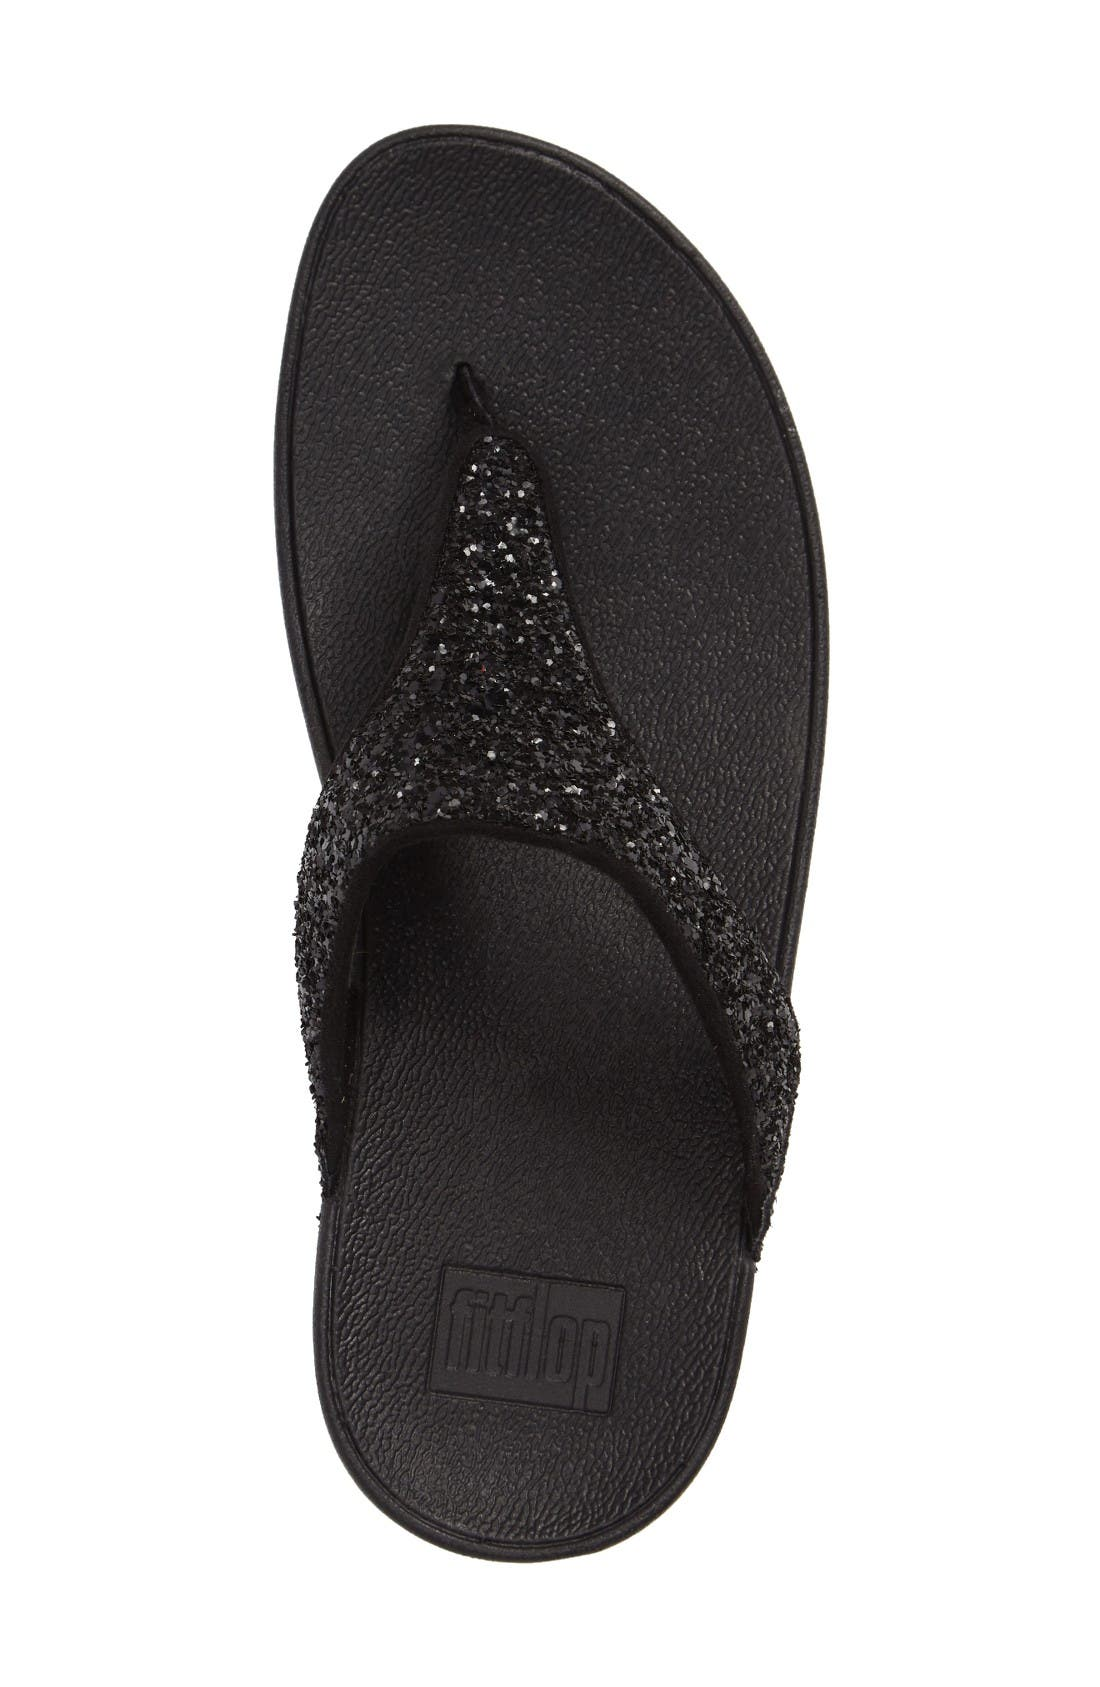 Alternate Image 3  - FitFlop Glitterball™ Thong Sandal (Women)